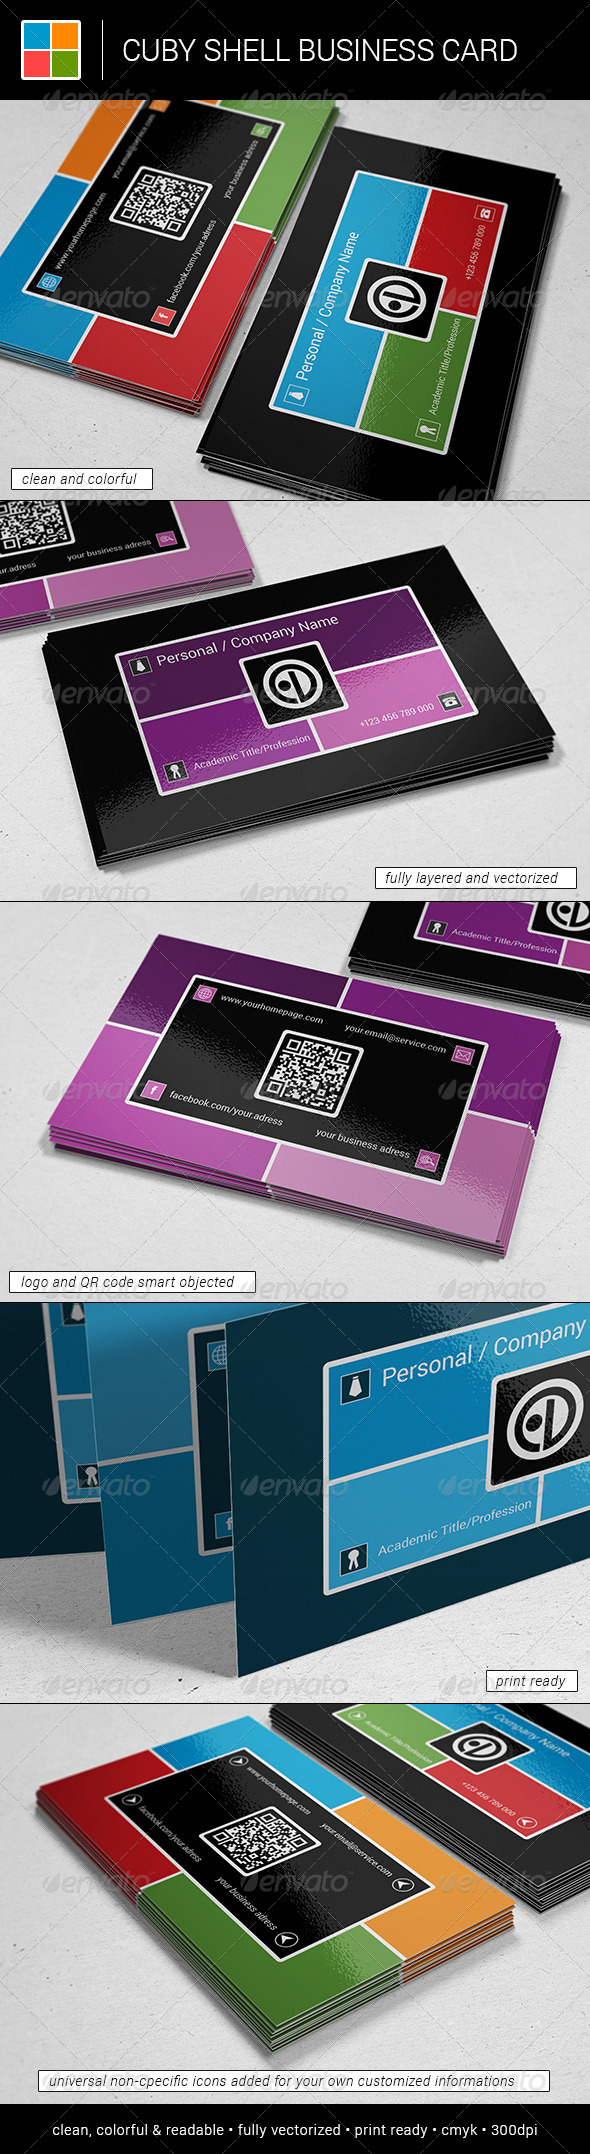 GraphicRiver Cuby Shell Business Card 5946617